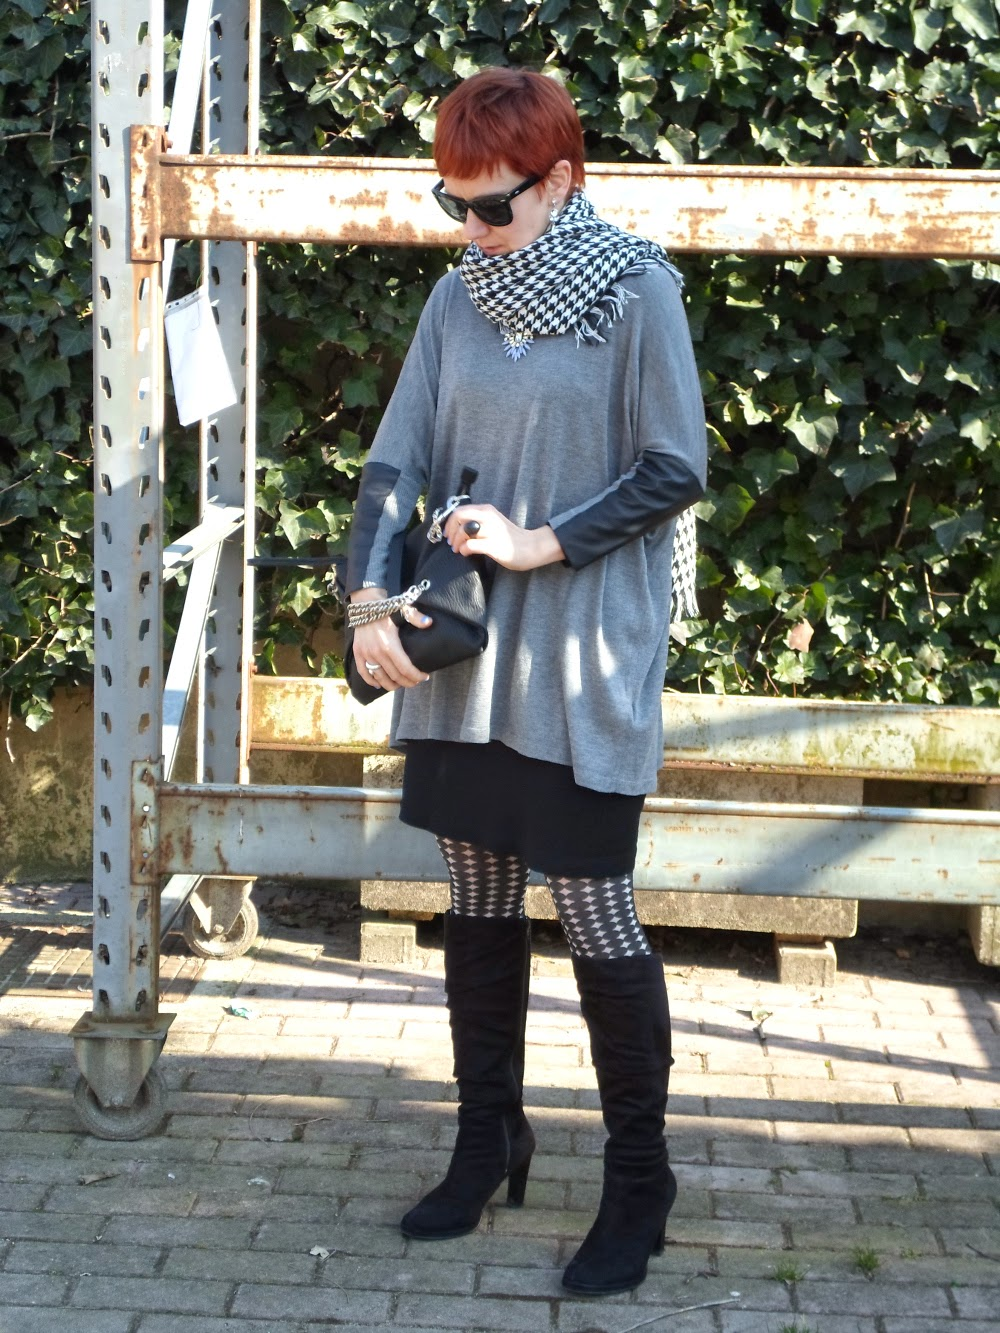 Batwing PU Panel Sleeves Top, Little Black Wrap Dress, Funky Black & White Tights, Heeled Sued Boots, Houndstooth Scarf | Vogue it Up - Houndstooth & Funky Tights || Funky Jungle, fashion and personal style blog